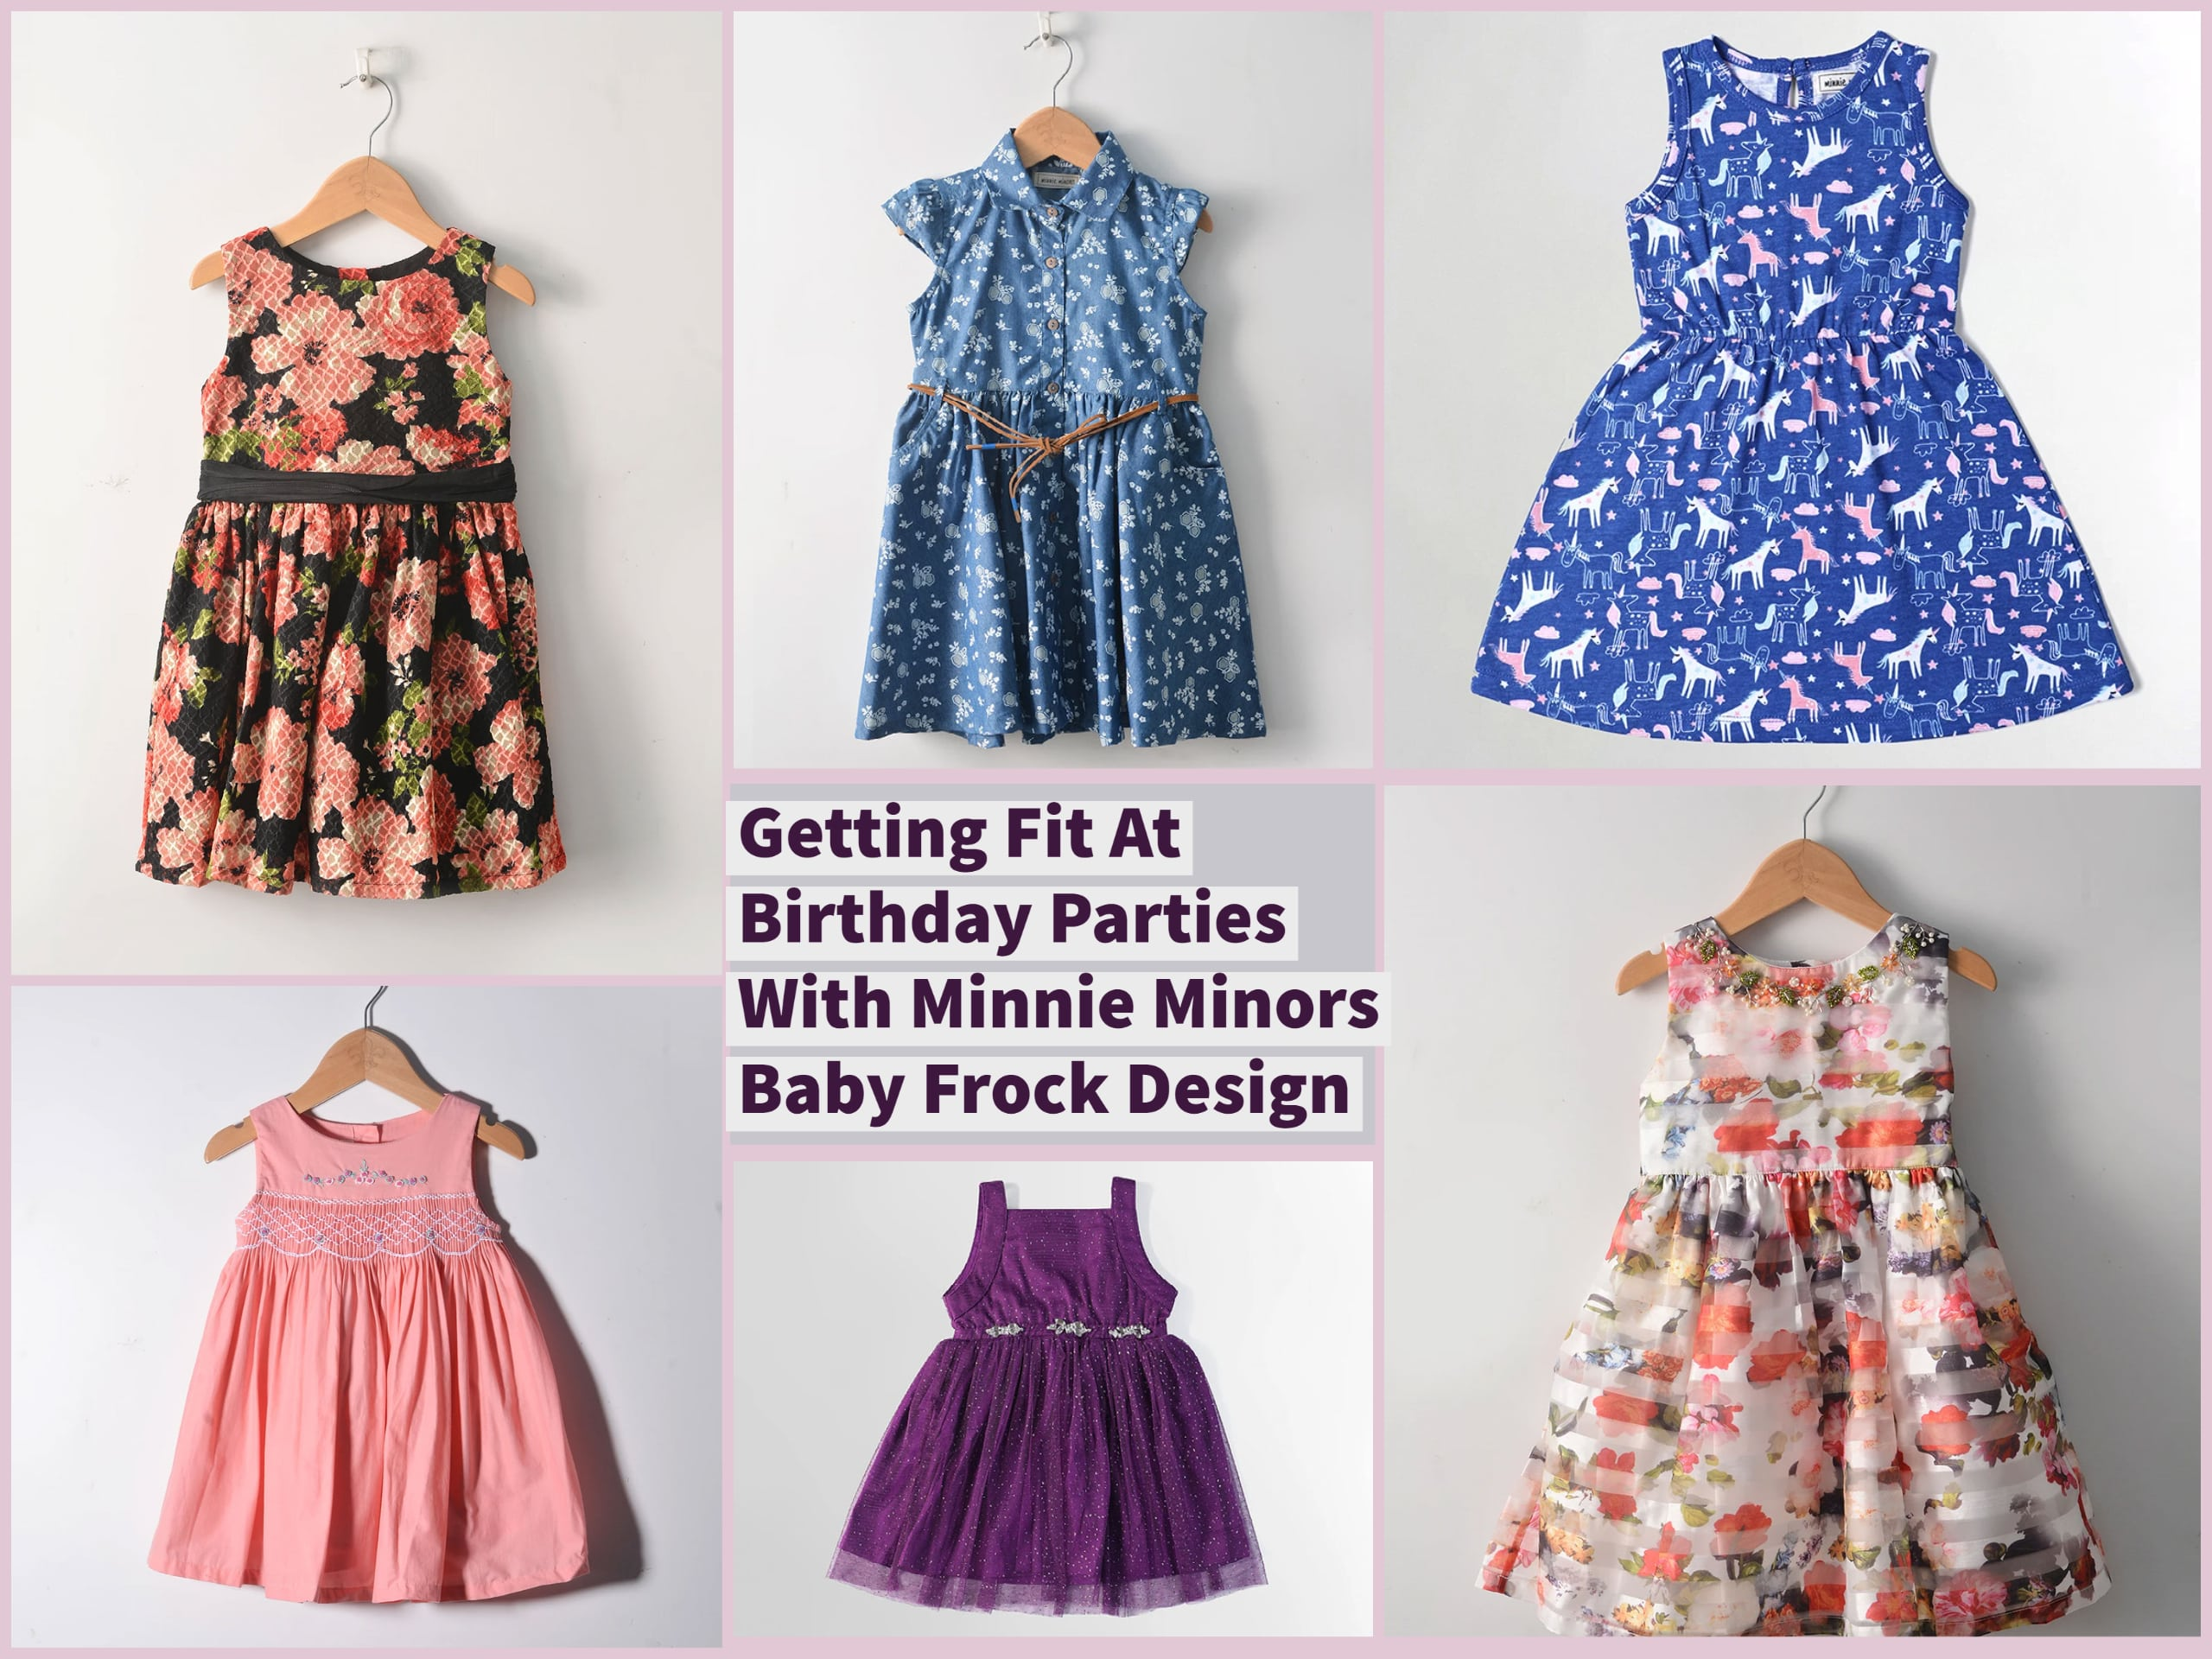 Getting Fit At Birthday Parties With Minnie Minors Baby Frock Design